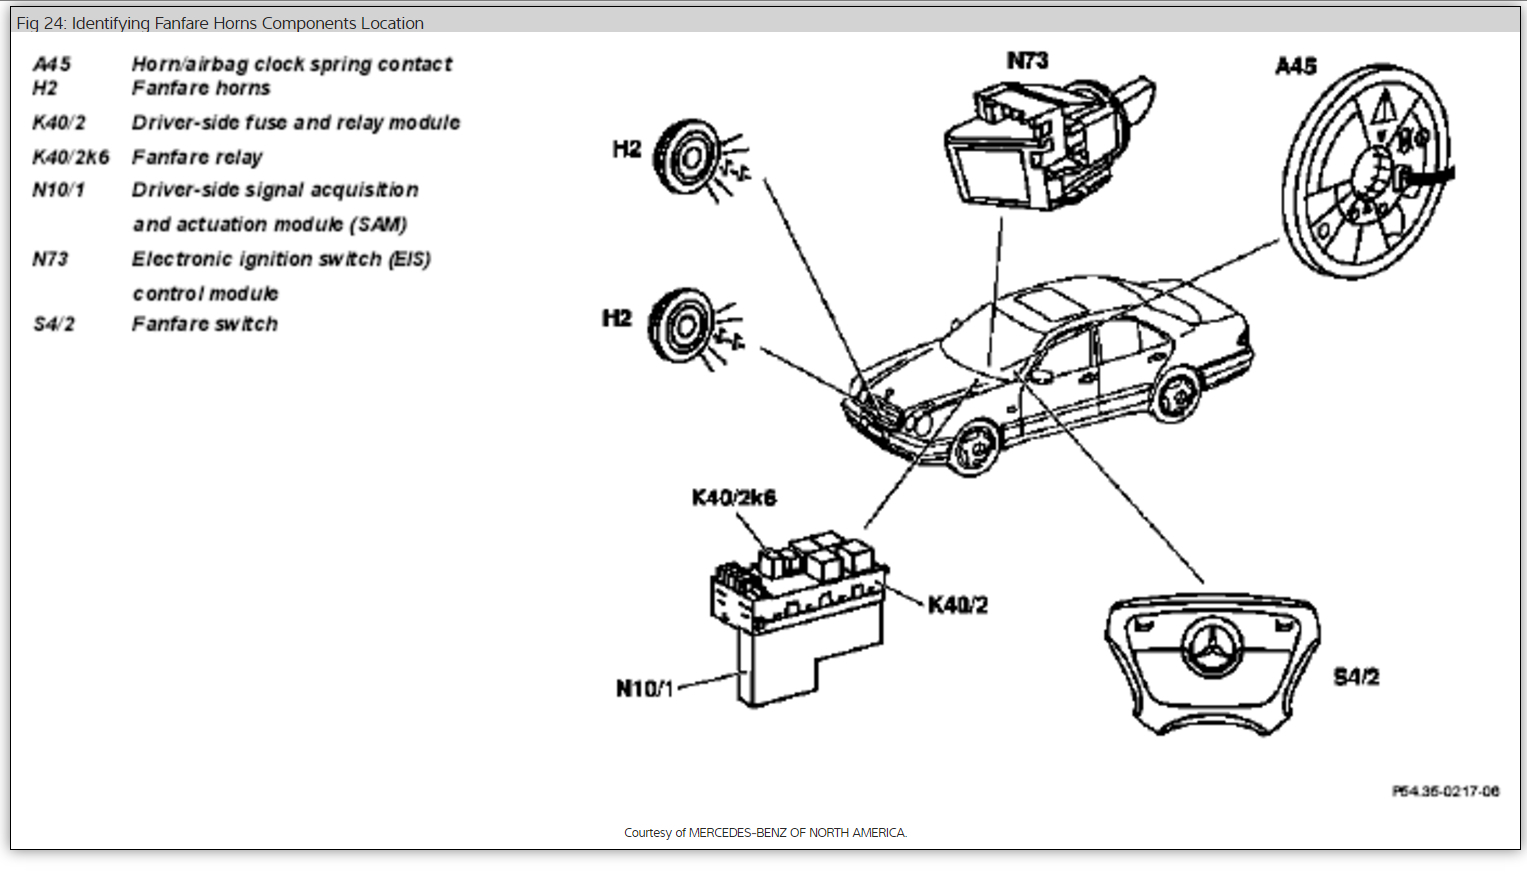 2000 Mercedes S430 Fuse Box Location : 36 Wiring Diagram